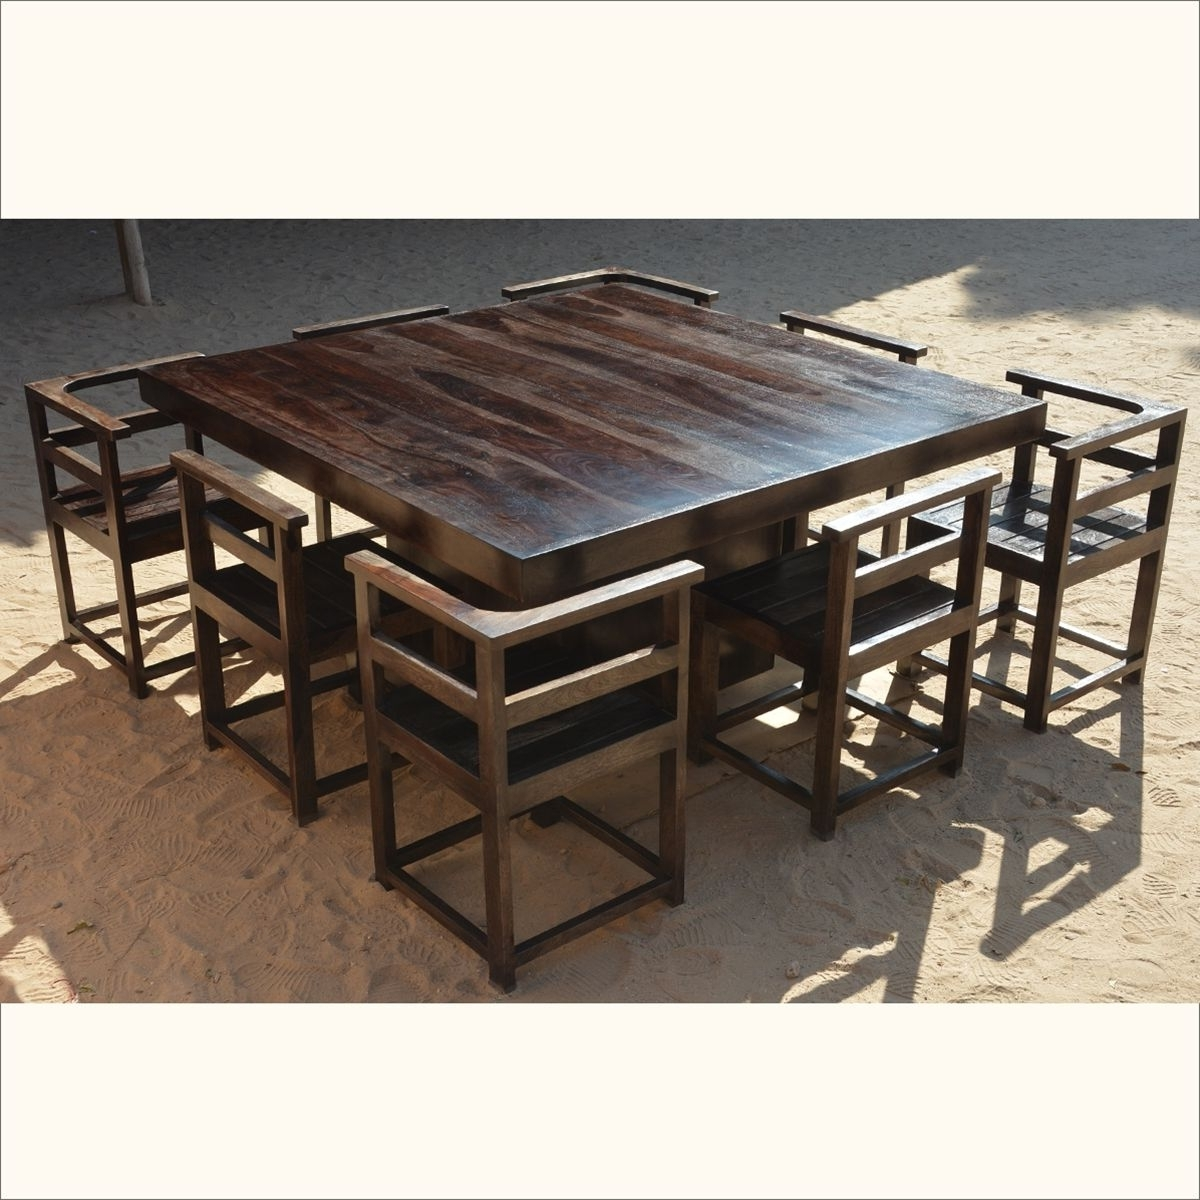 "Dining Tables For 8 With Most Up To Date Modern Rustic Solid Wood 64"" Square Pedestal Dining Table & 8 Chairs (View 14 of 25)"